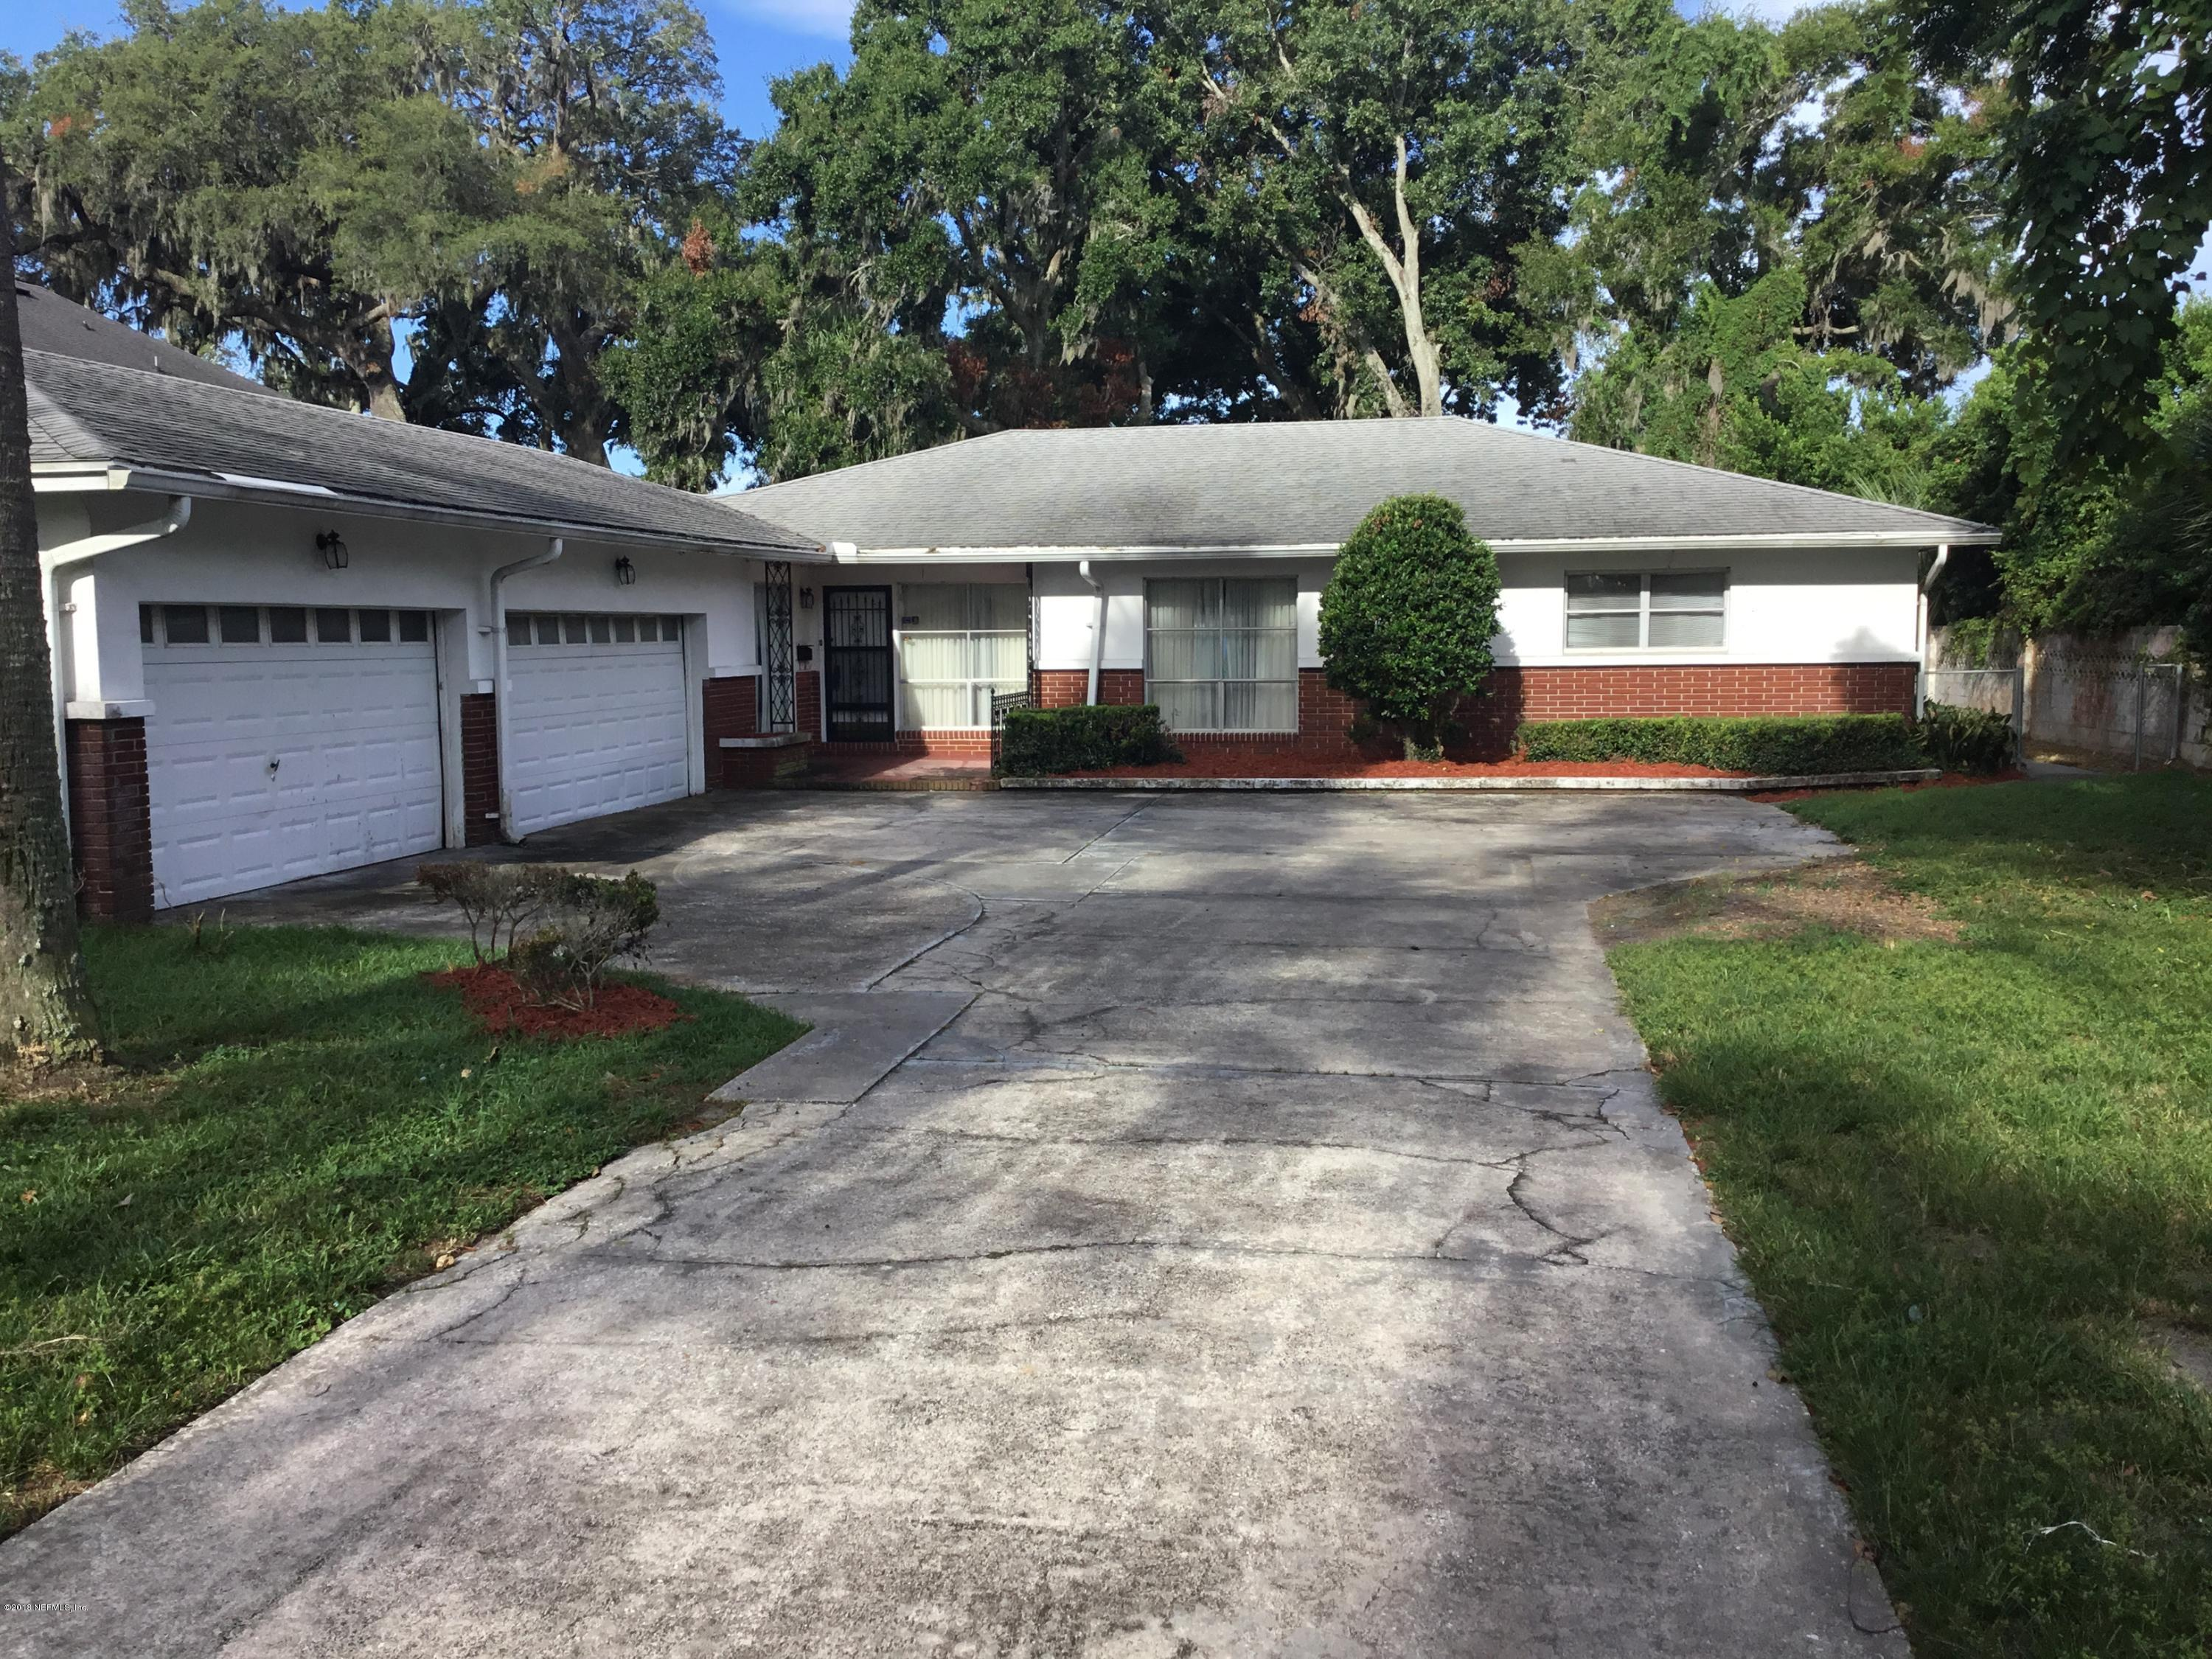 1500 RIVER BLUFF, JACKSONVILLE, FLORIDA 32211, 3 Bedrooms Bedrooms, ,2 BathroomsBathrooms,Residential - single family,For sale,RIVER BLUFF,951409